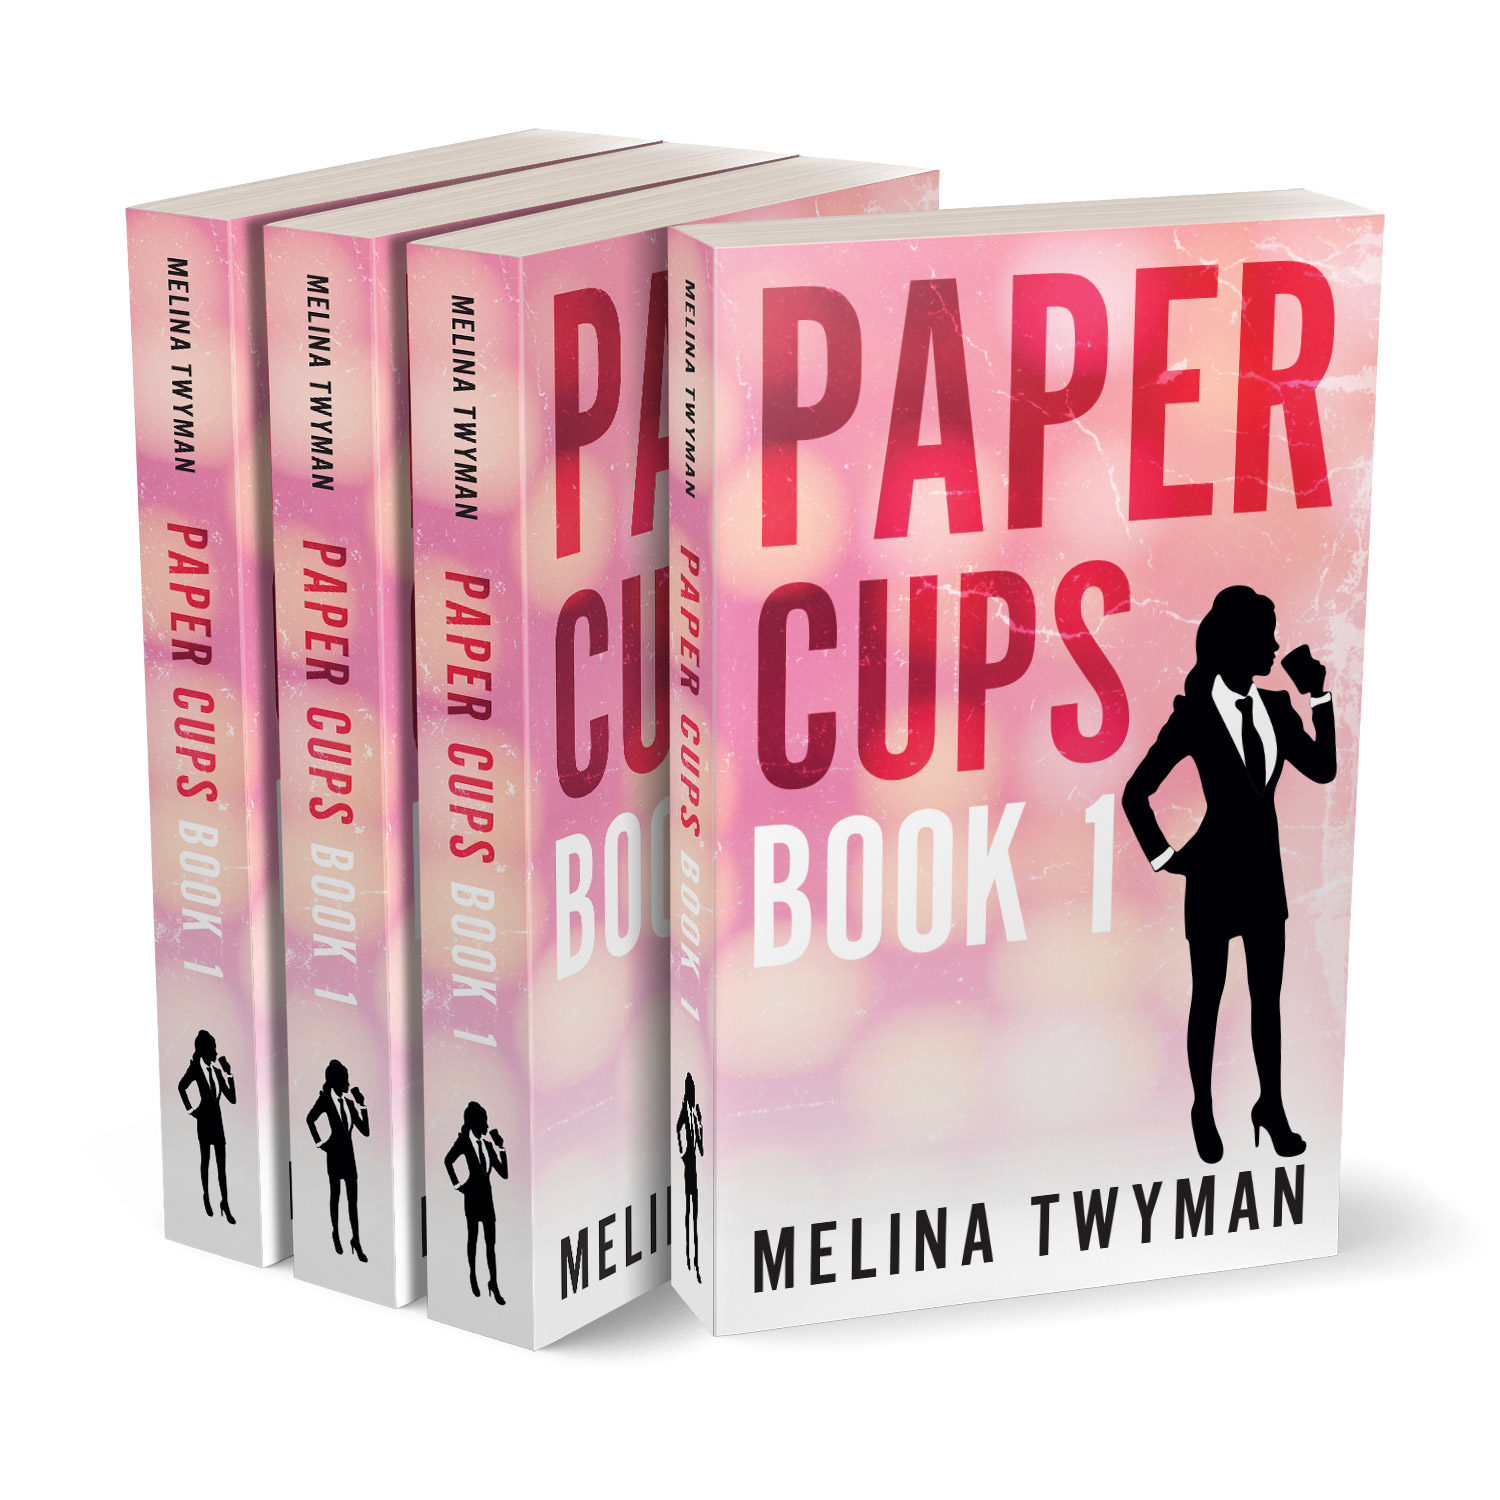 'Paper Cups' is an excellent study of a young woman's struggles with social alcoholism. The author is Melina Twyman. The book cover design and interior formatting are by Mark Thomas. To learn more about what Mark could do for your book, please visit coverness.com.